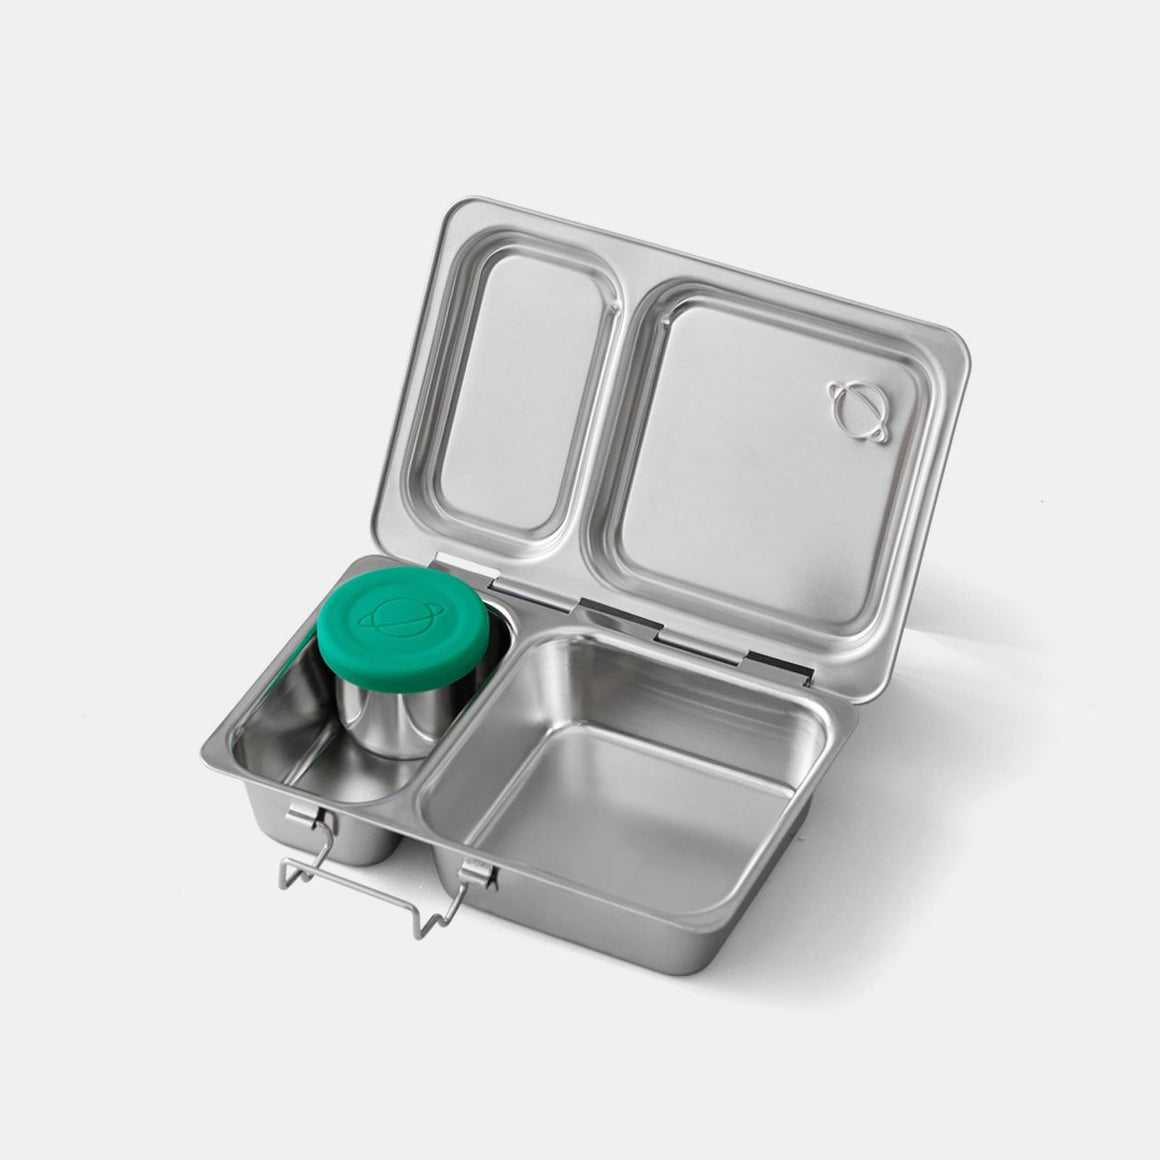 Planetbox Stainless Steel Lunchbox Shuttle